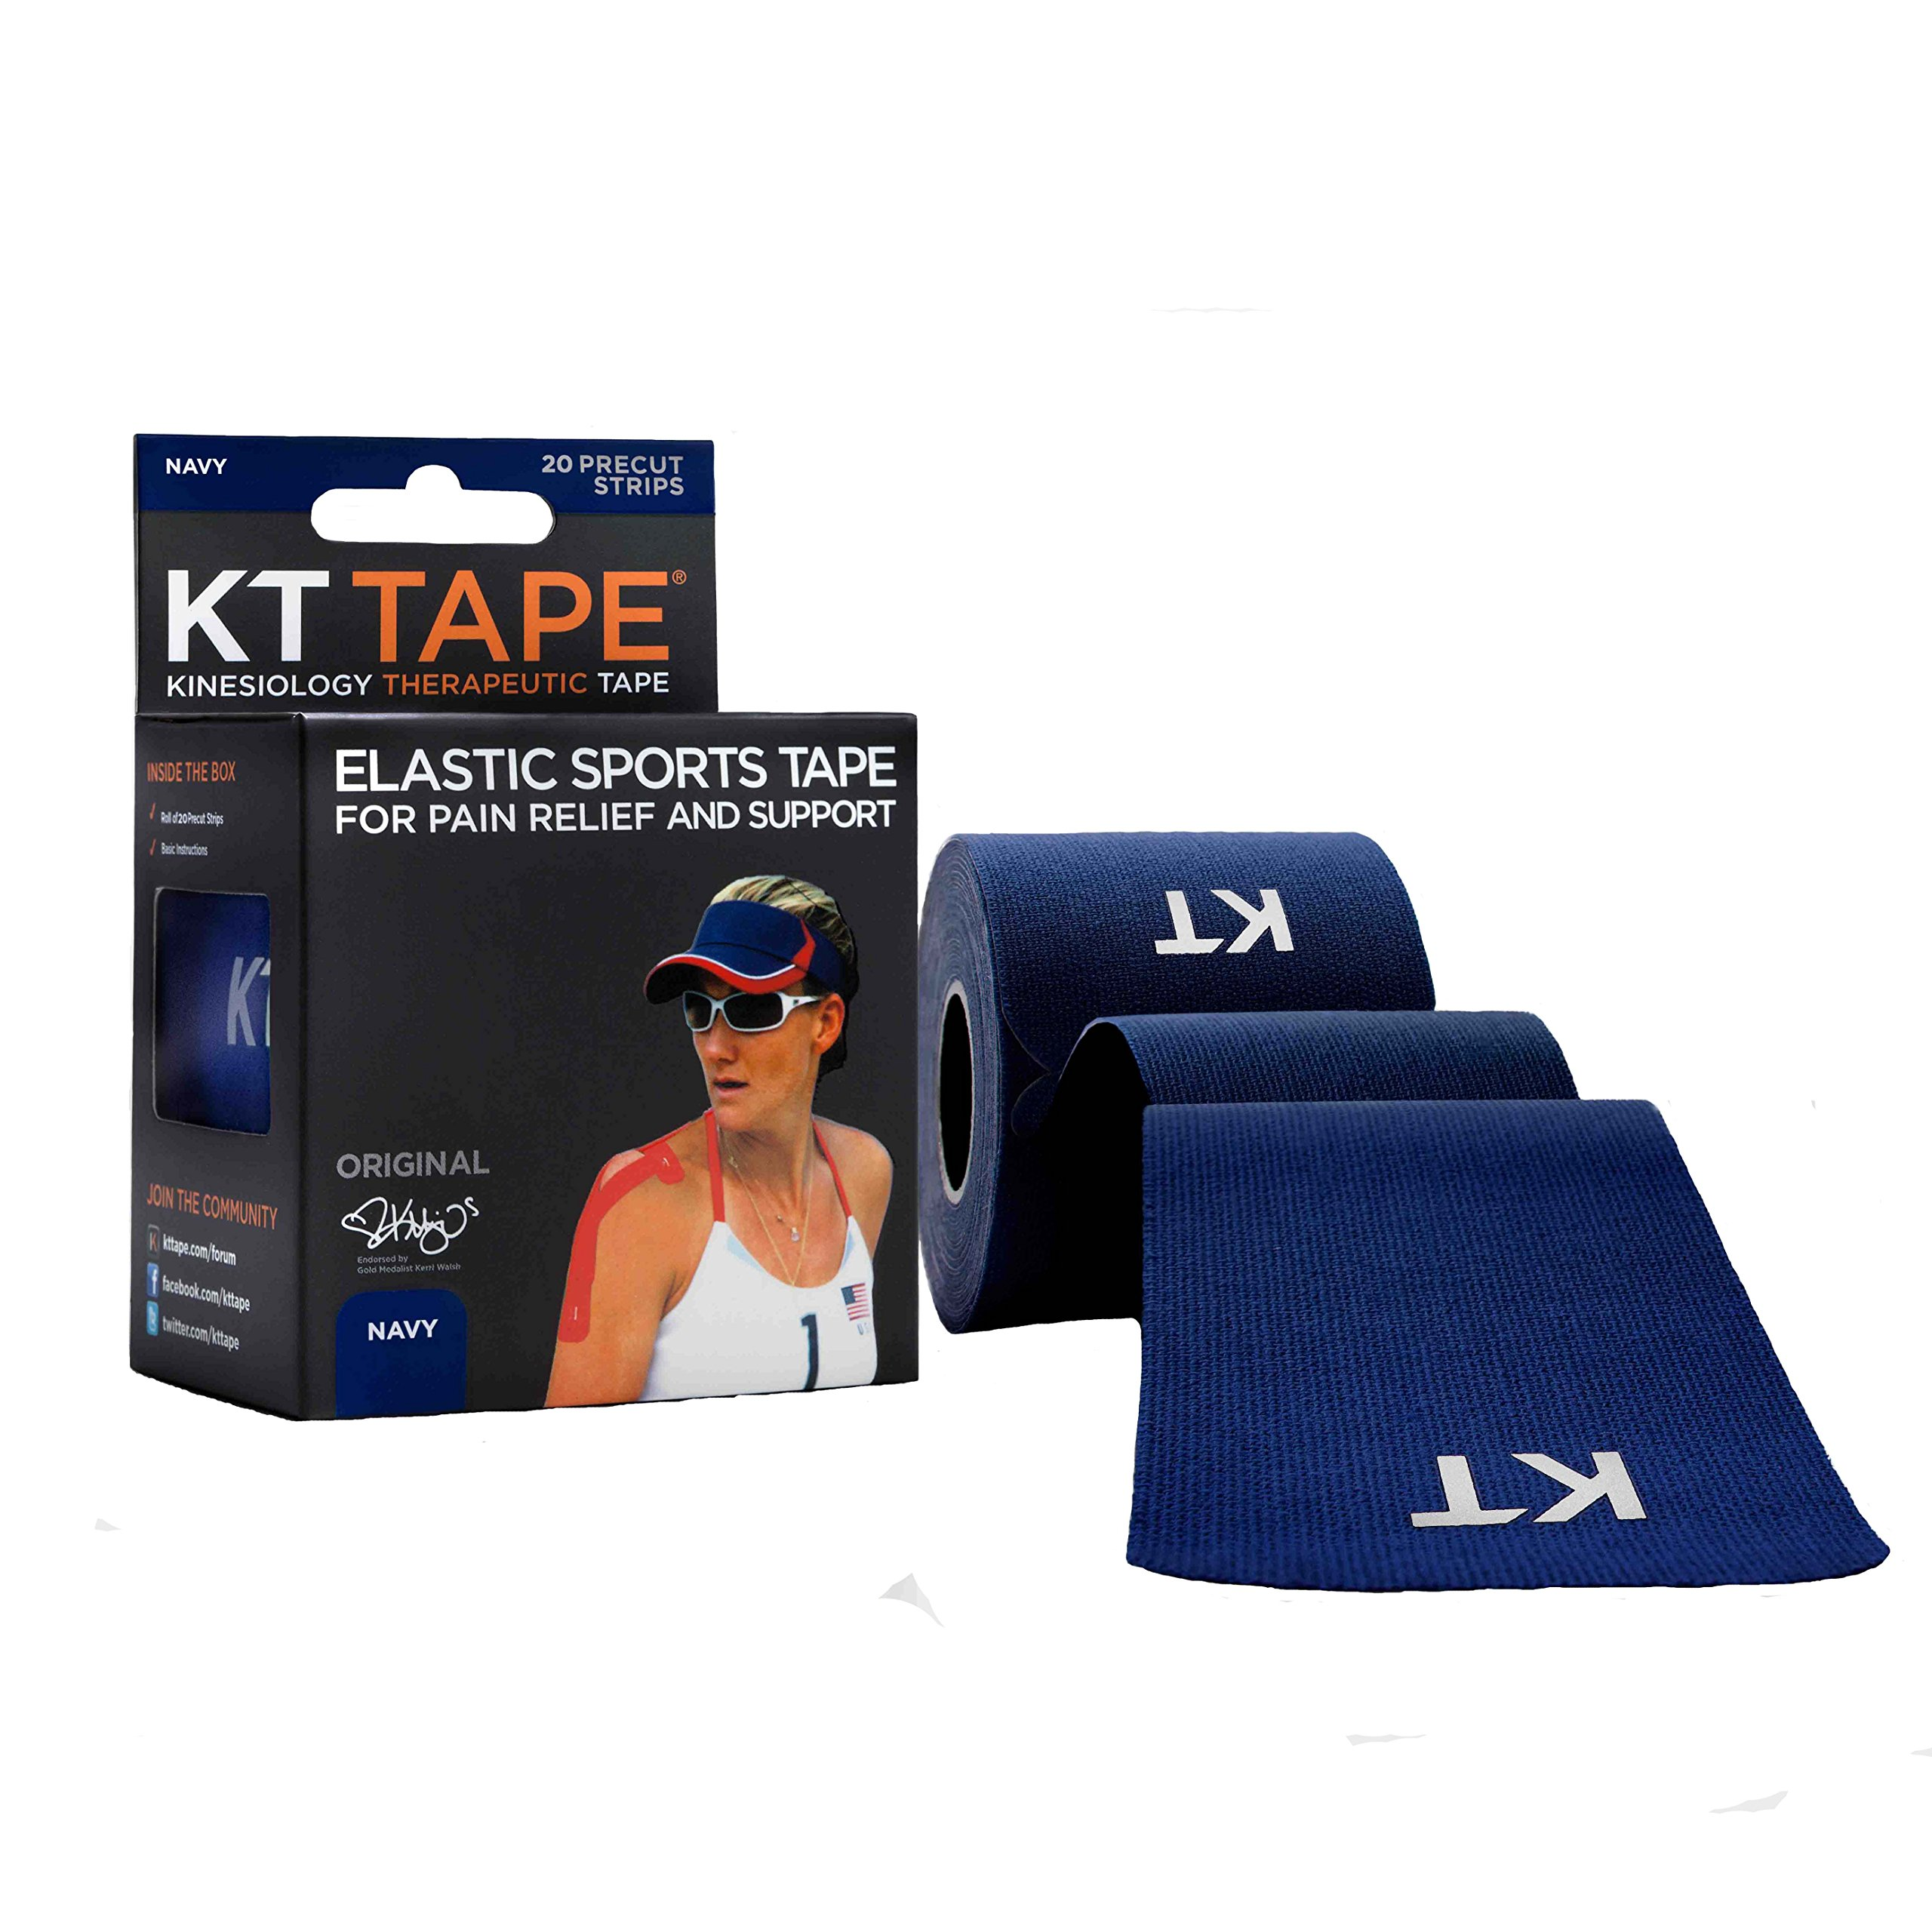 KT Tape Original Cotton Elastic Kinesiology Therapeutic Sports Tape, 20 Pre cut 10 inch Strips, Navy